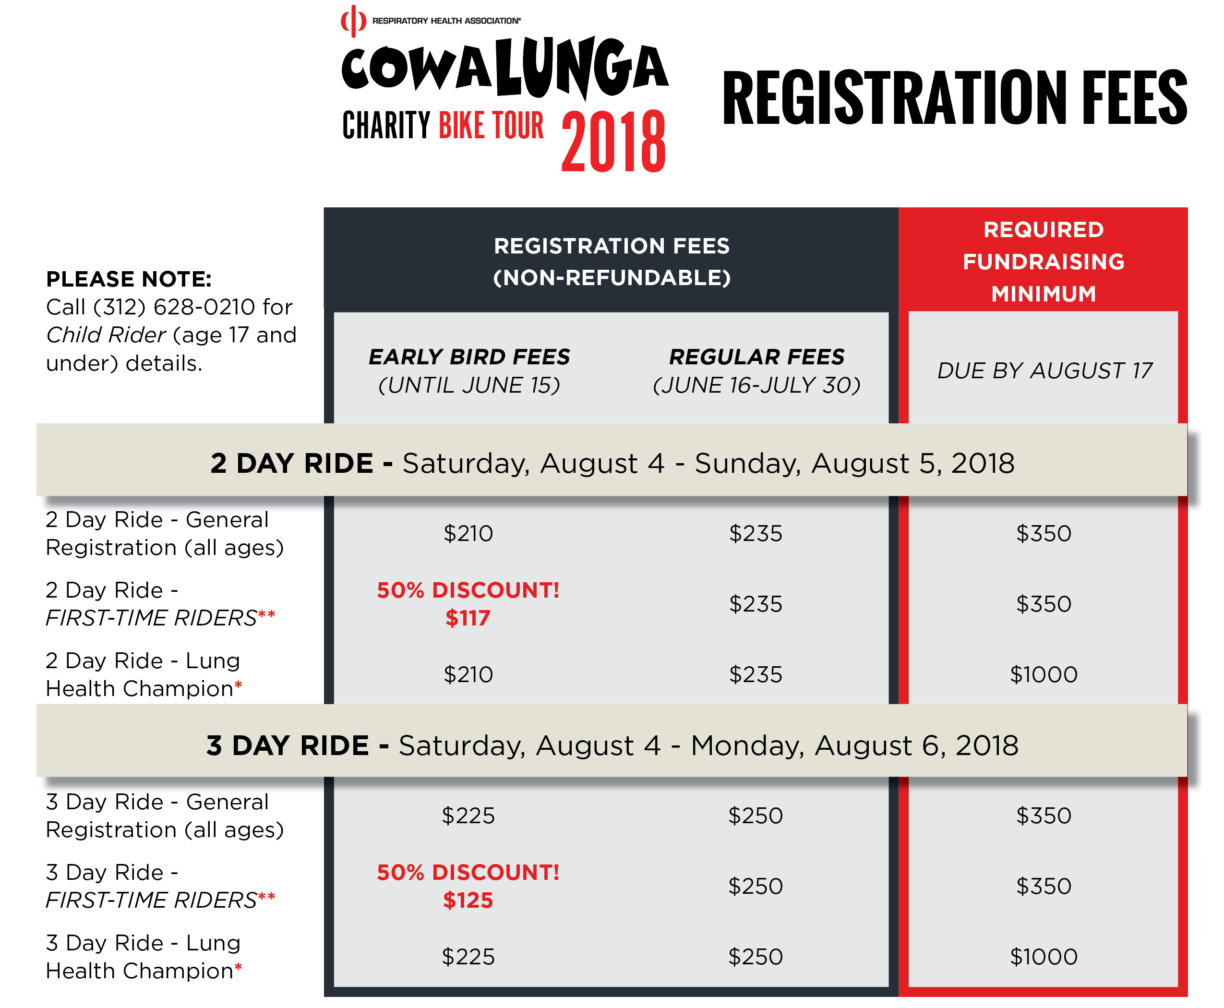 CowaLUNGa 2018 Registration Fees and Fundraising Minimums